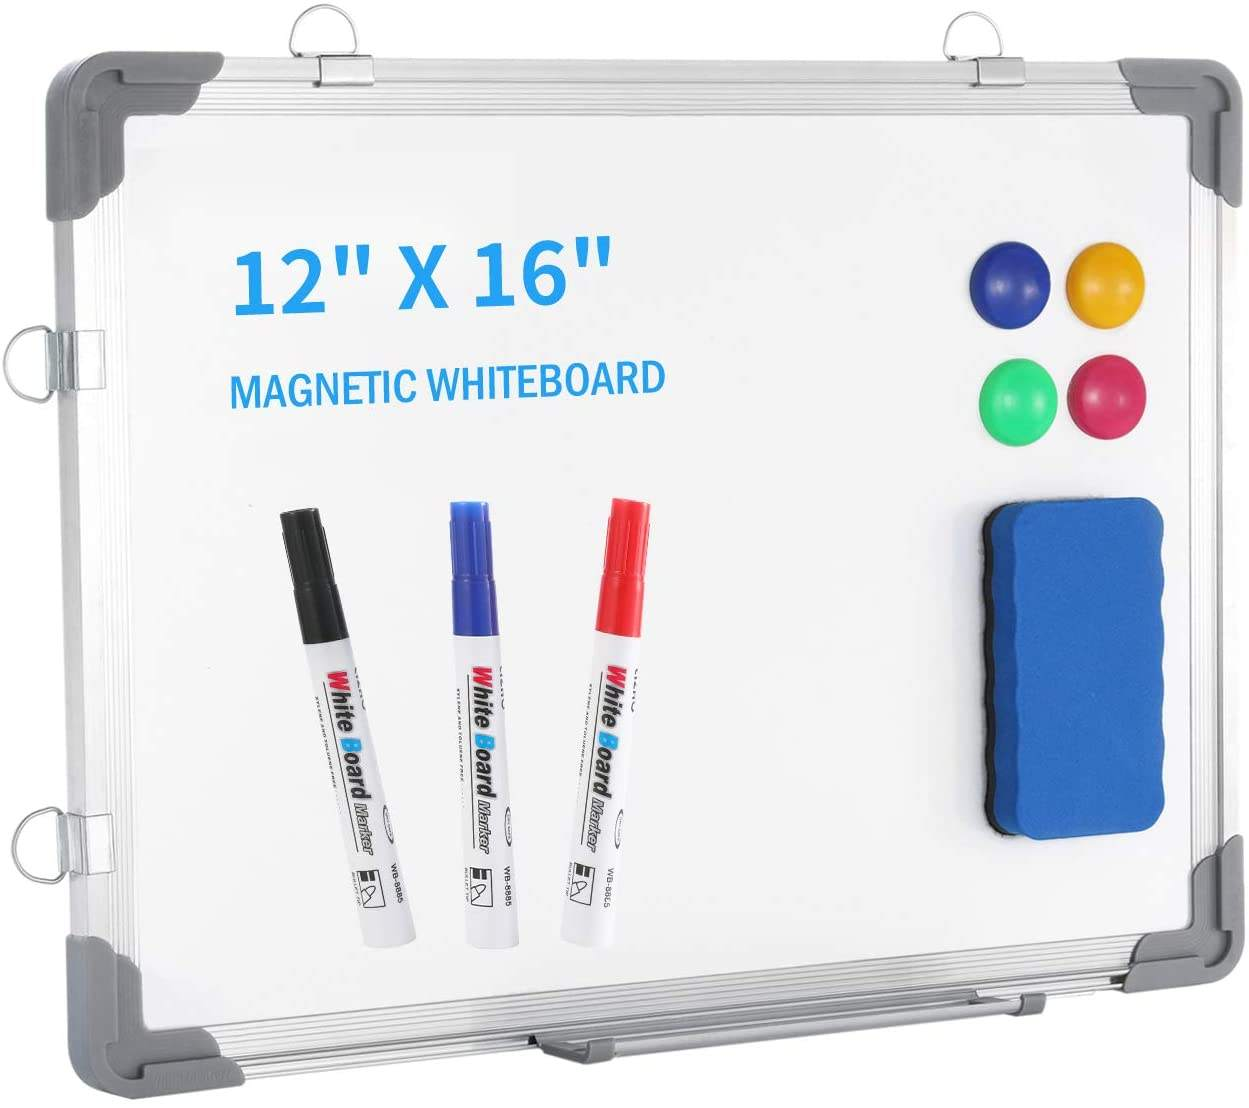 Desktop Portable Mini Small Dry Erase Board Wall Hanging Magnetic Double-Sided Whiteboard for Kids Drawing Planning Memo Board